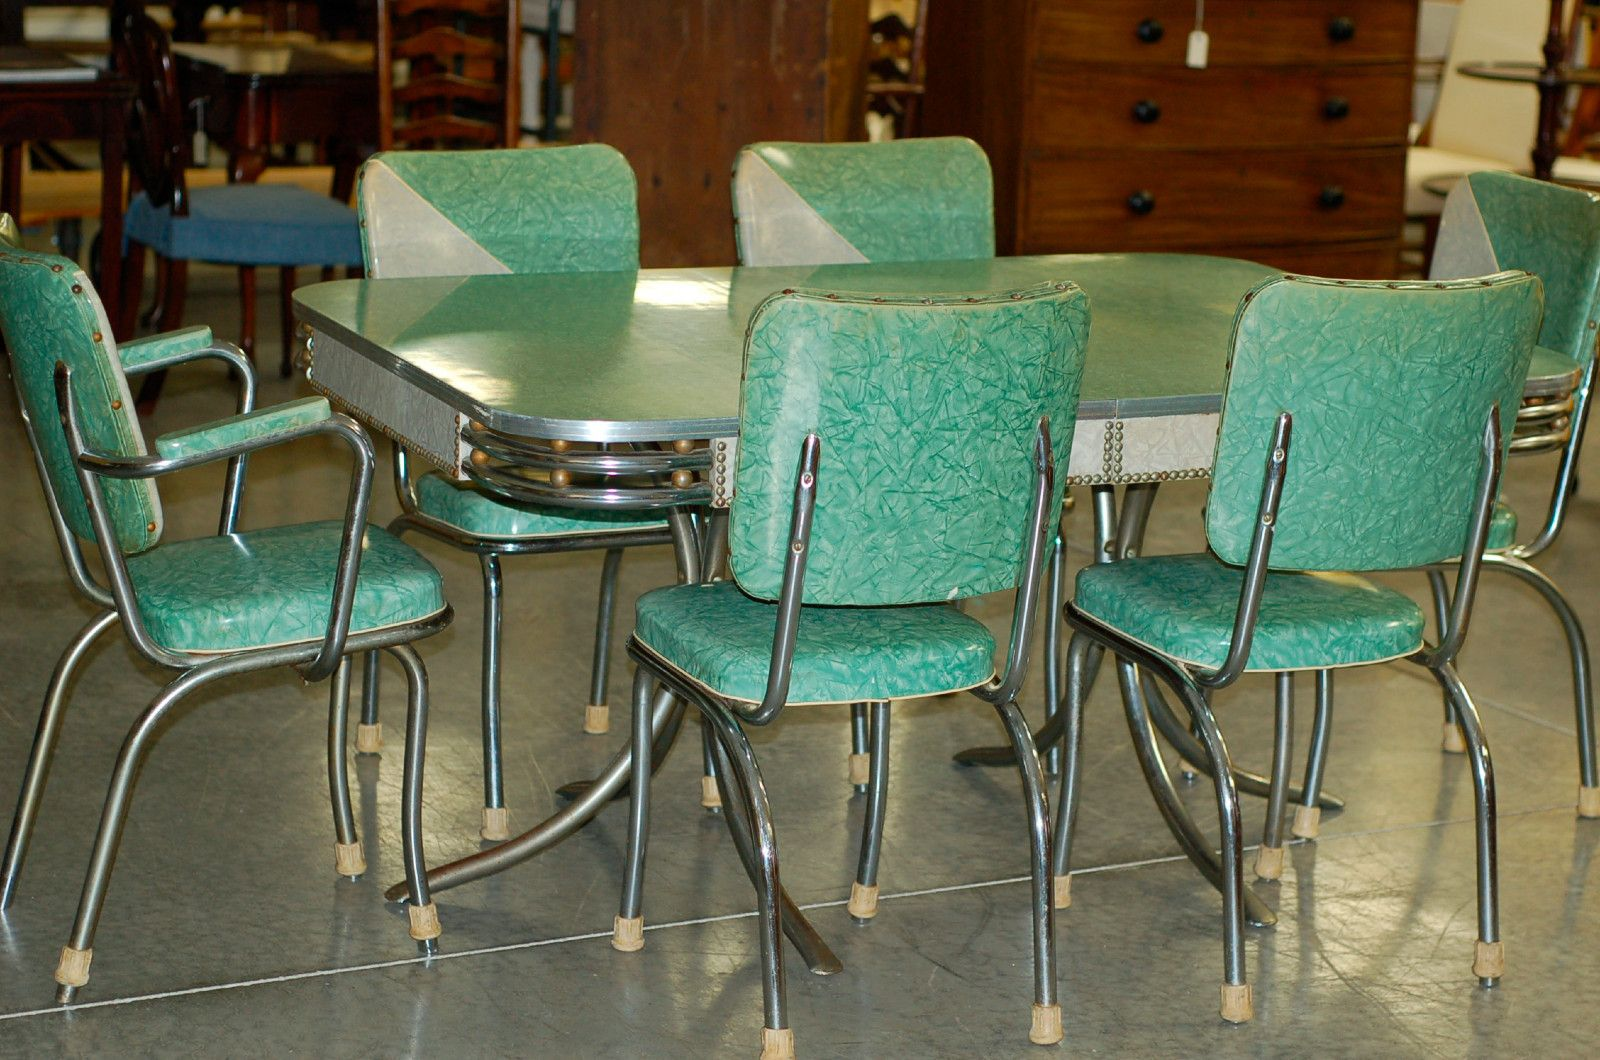 Chrome Vintage 1950 S Formica Kitchen Table And Chairs Teal Mint Green Wow 700 Retro Kitchen Tables Kitchen Table Settings Vintage Kitchen Table